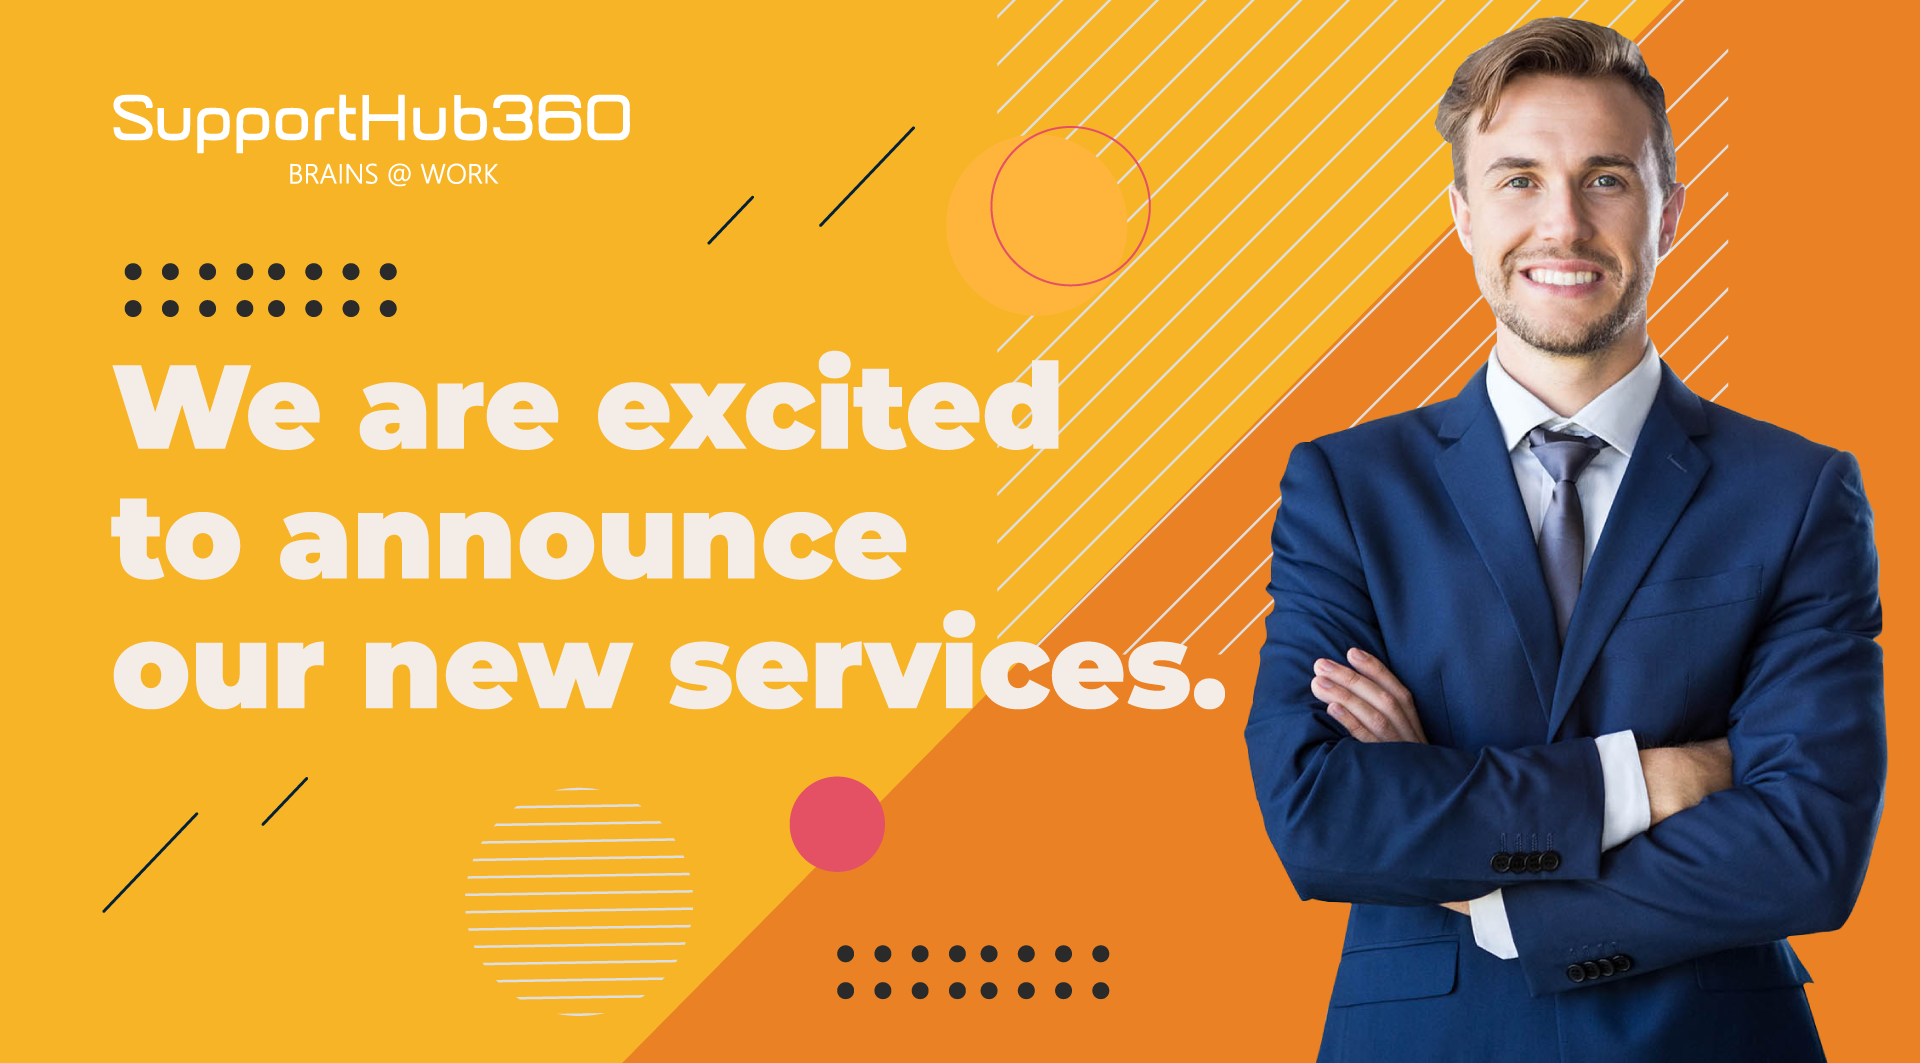 Announce-new-services